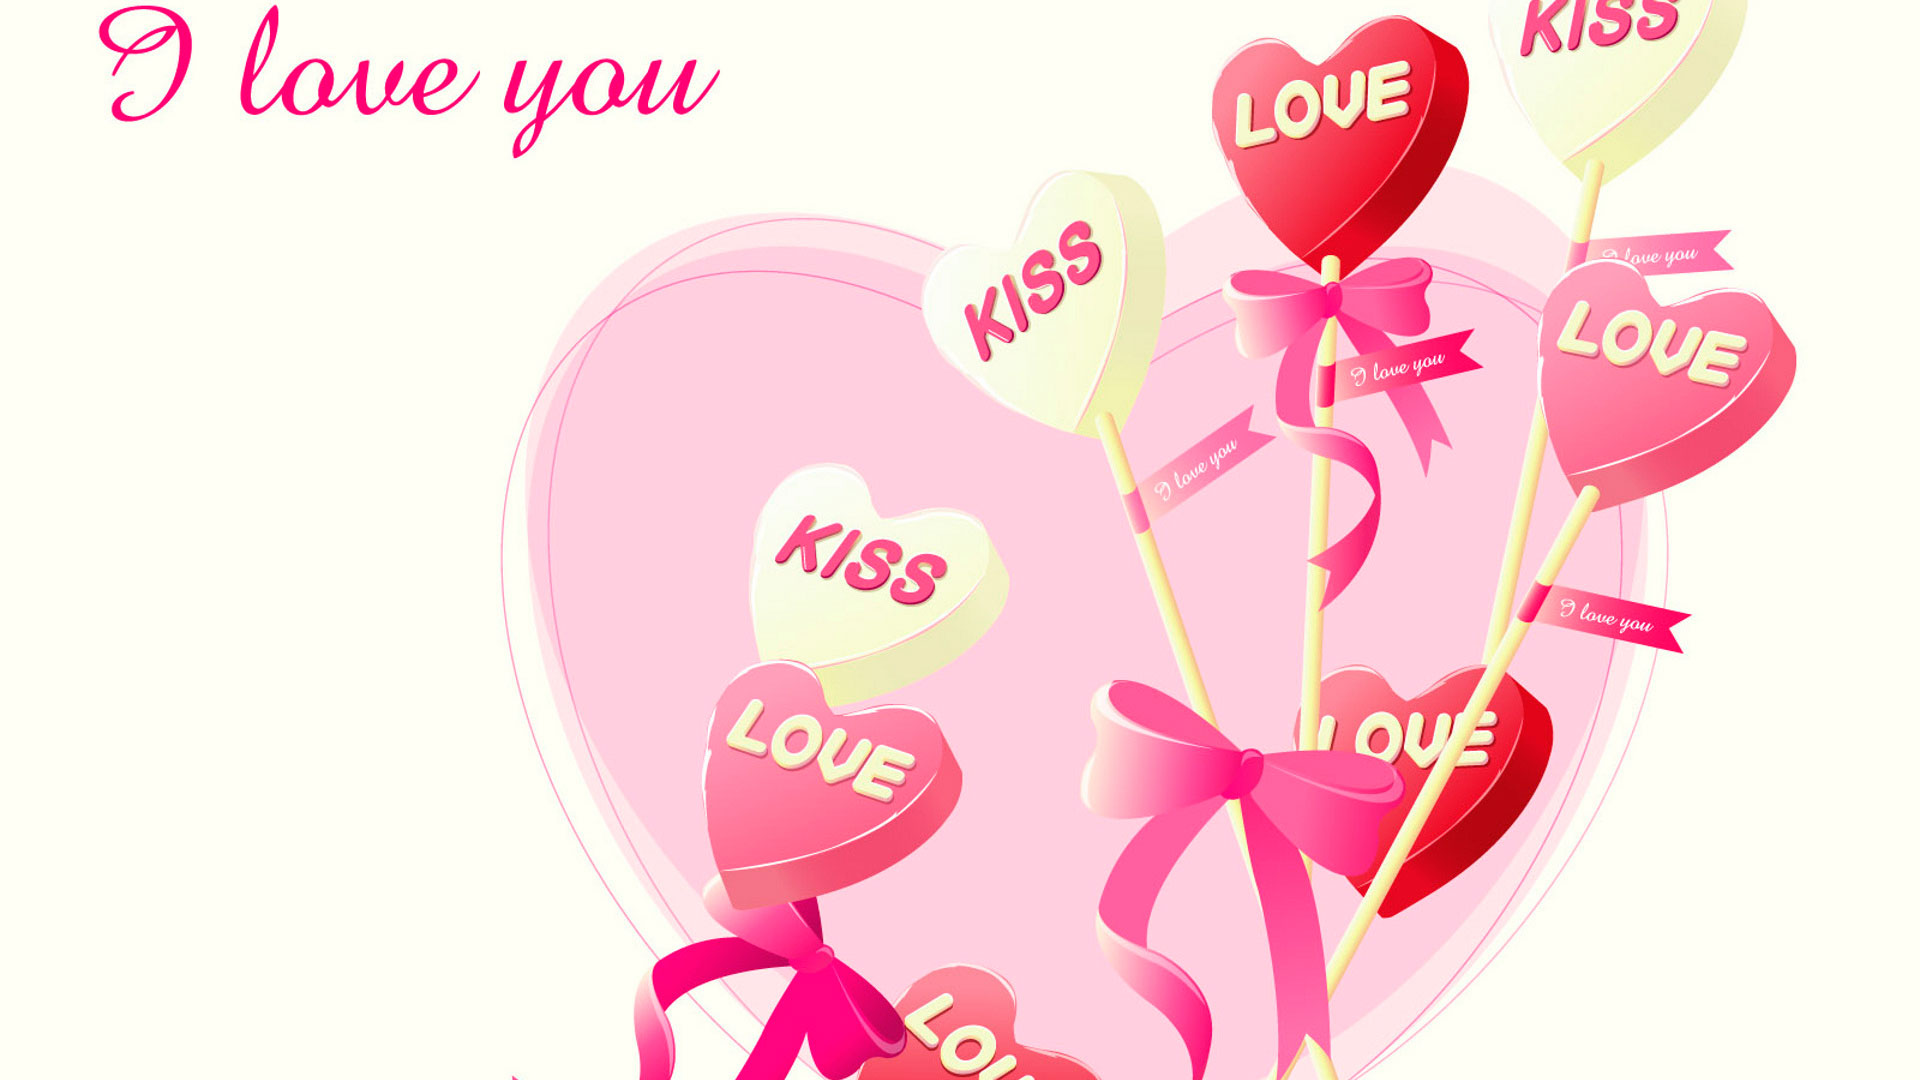 Love Wallpaper collection Zip : Kiss love images wallpapers download hd collection - HD ...